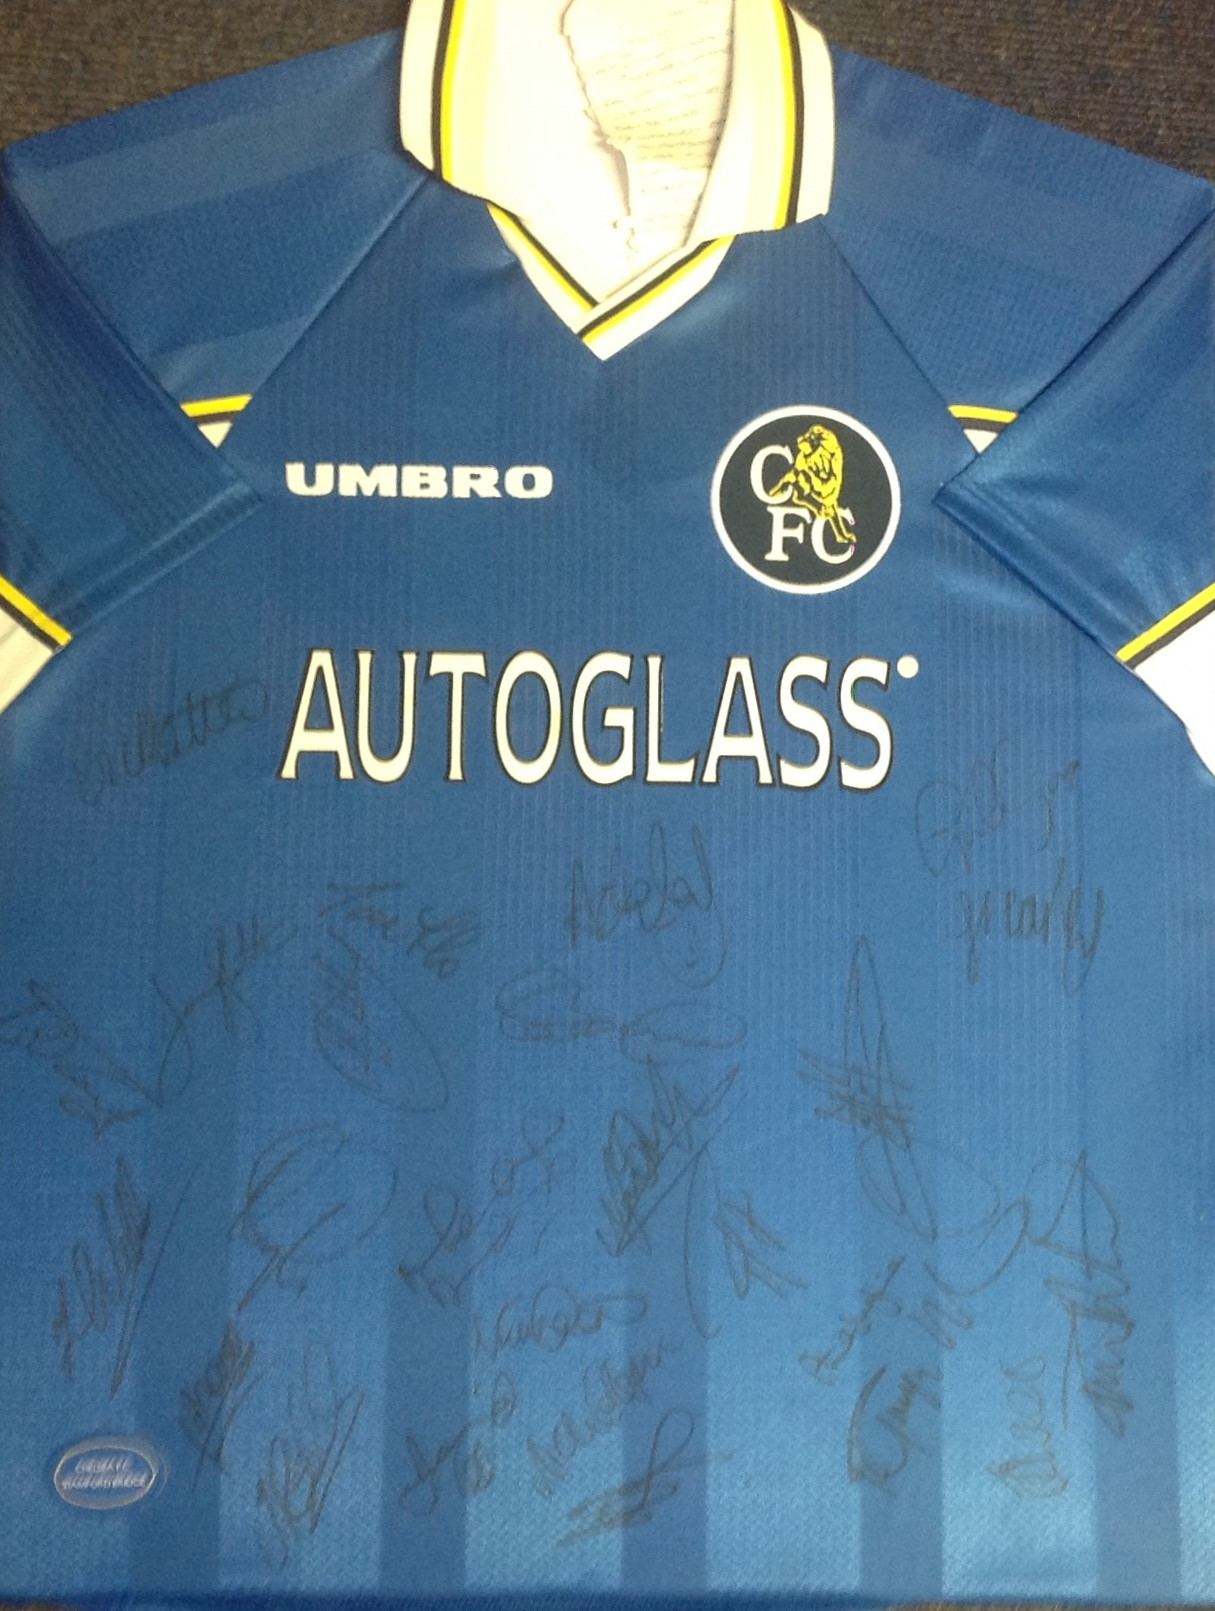 Lot 44 - Chelsea FC signed shirt signed by over 20 members of the squad that won The League cup and UEFA